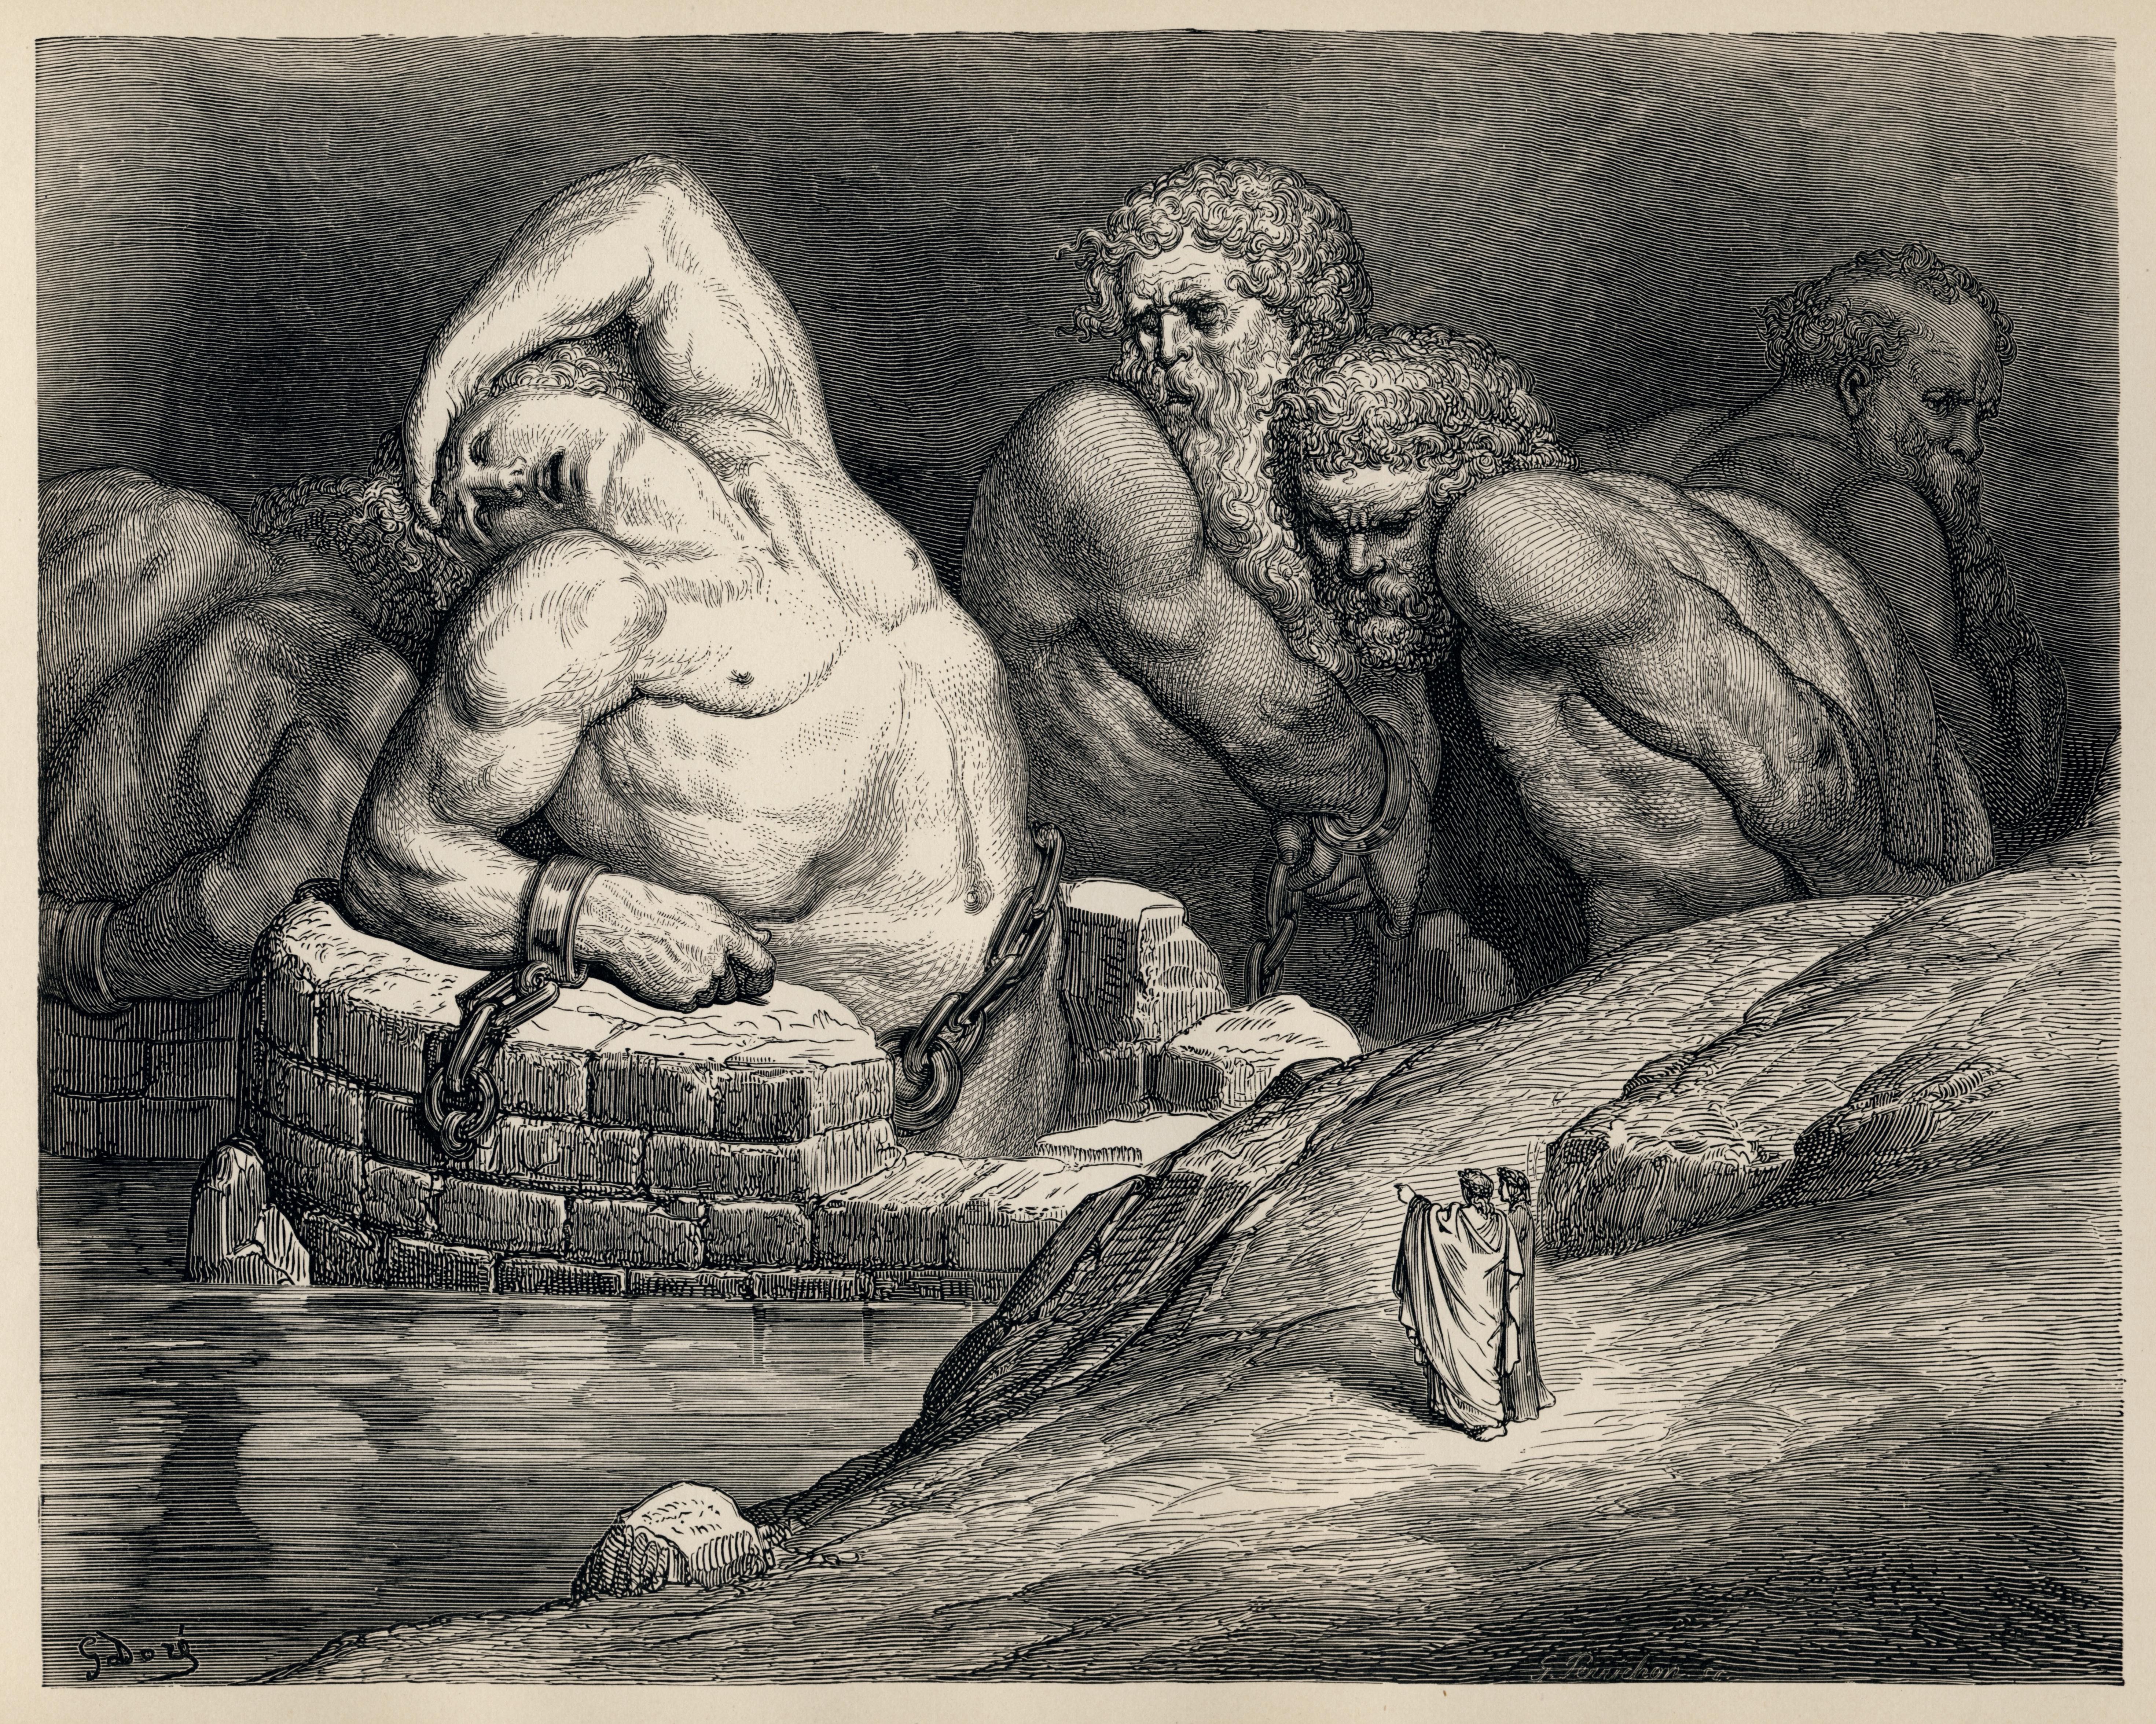 Dantes Inferno  Writework Titans And Other Giants Are Imprisoned In Hell In This Illustration By  Gustave Dor Of Dantes